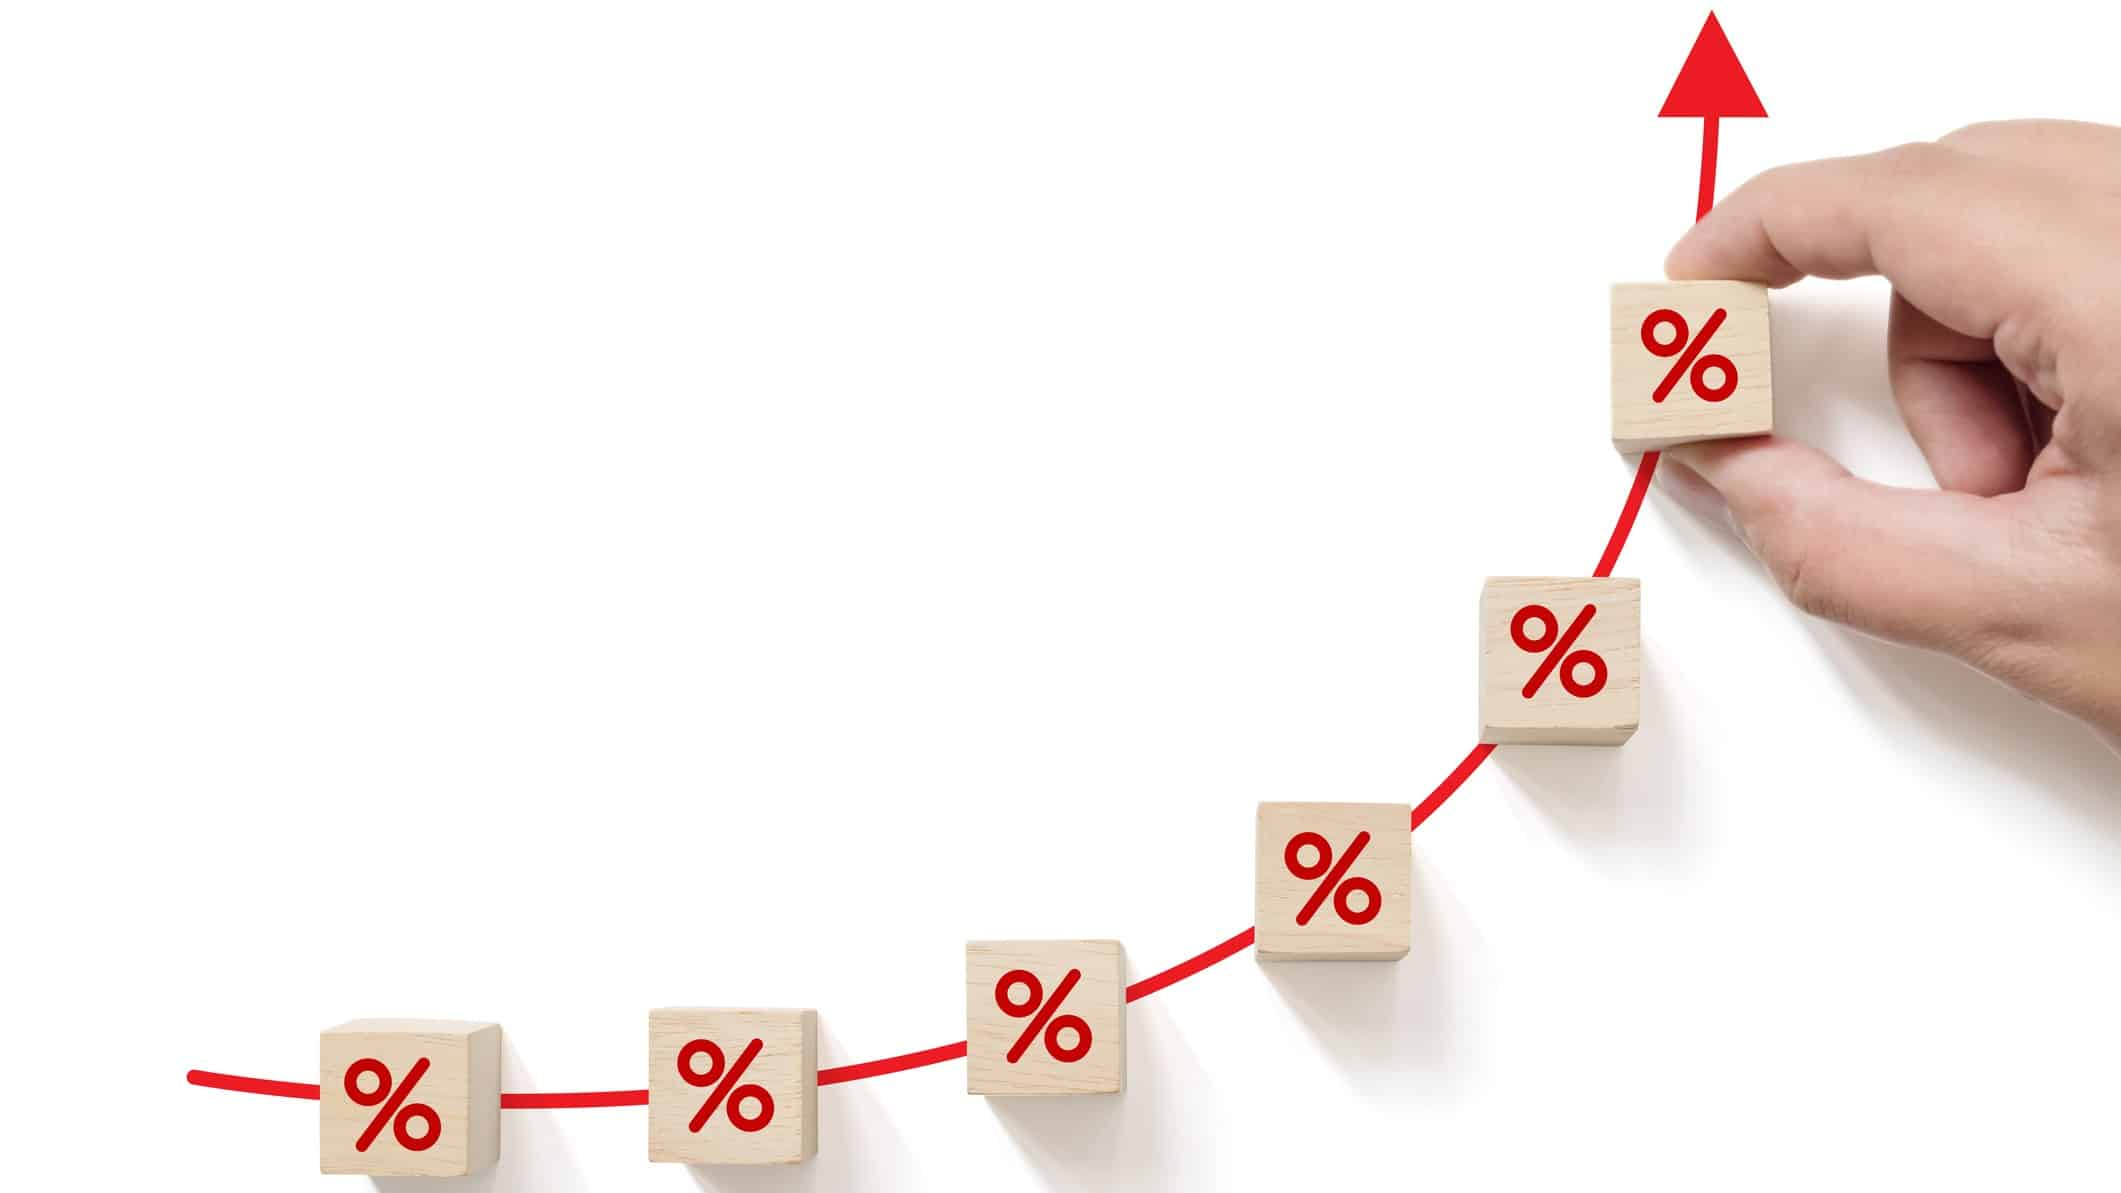 share market high, all time high, percentages increasing with red arrow, asx 200